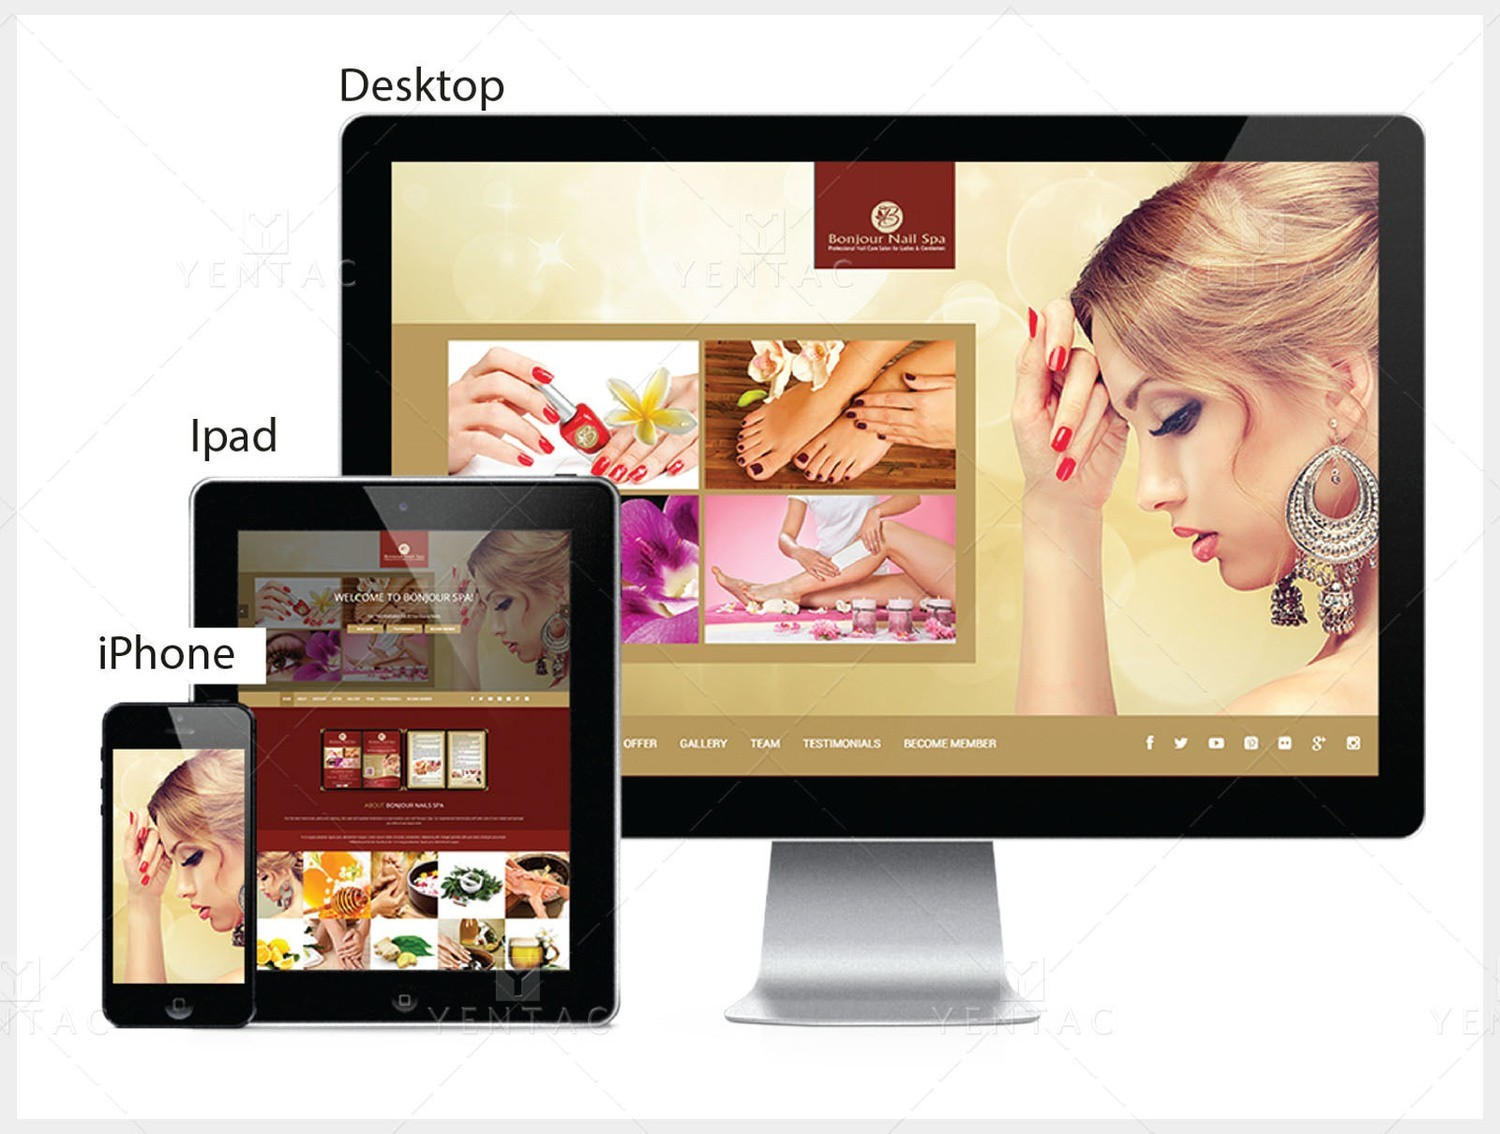 101 - Web Design Solution - Bonjour Nails Spa #5070 Salon